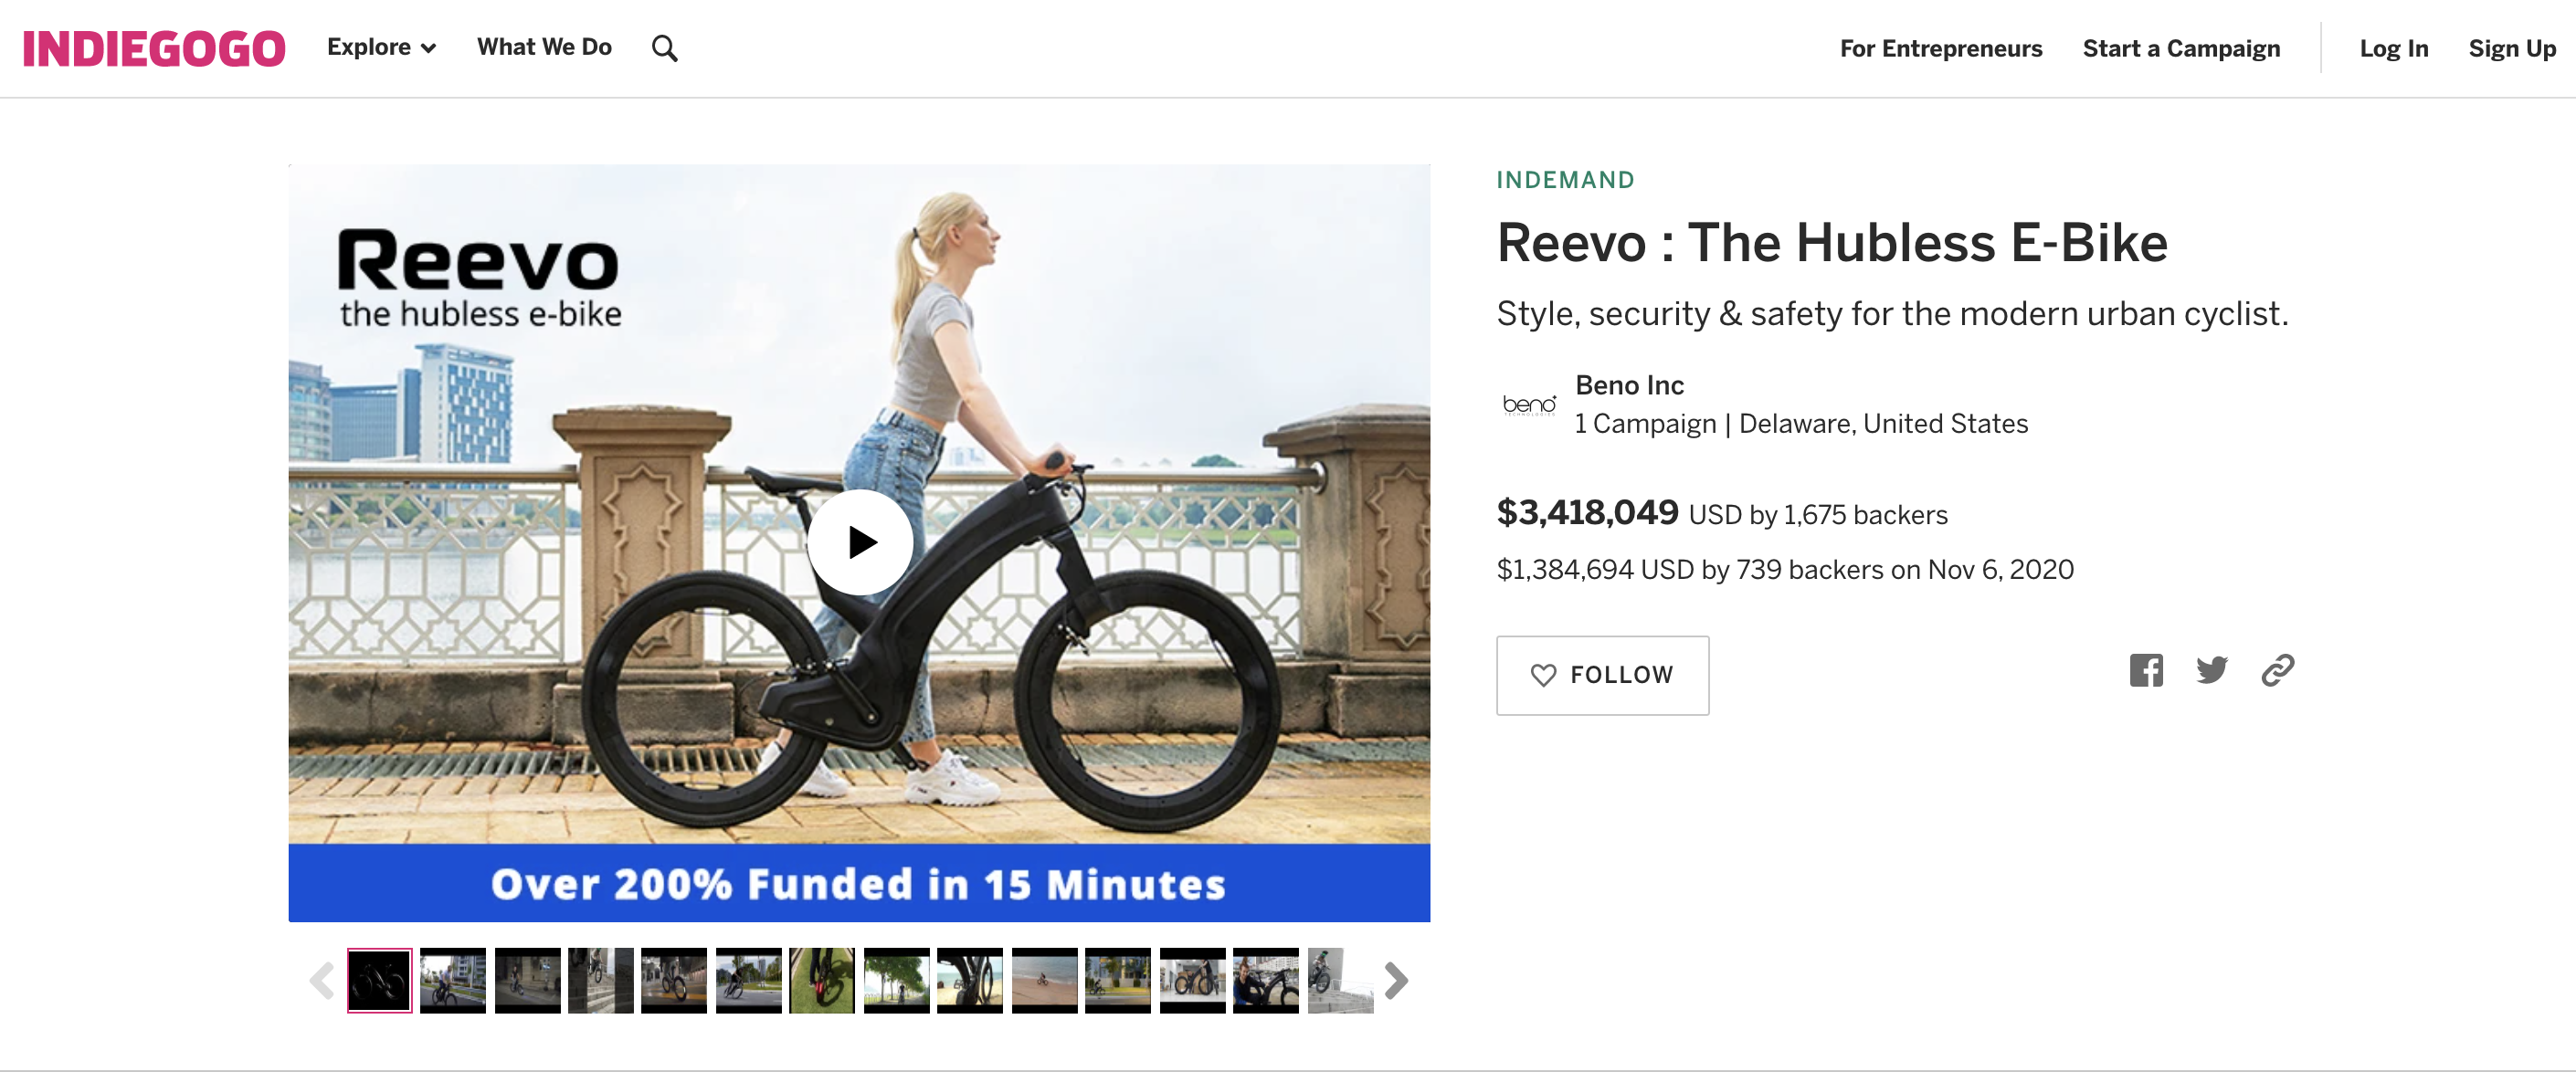 How to launch a successful crowdfunding campaign: the Indiegogo campaign for the Reevo hubless bike